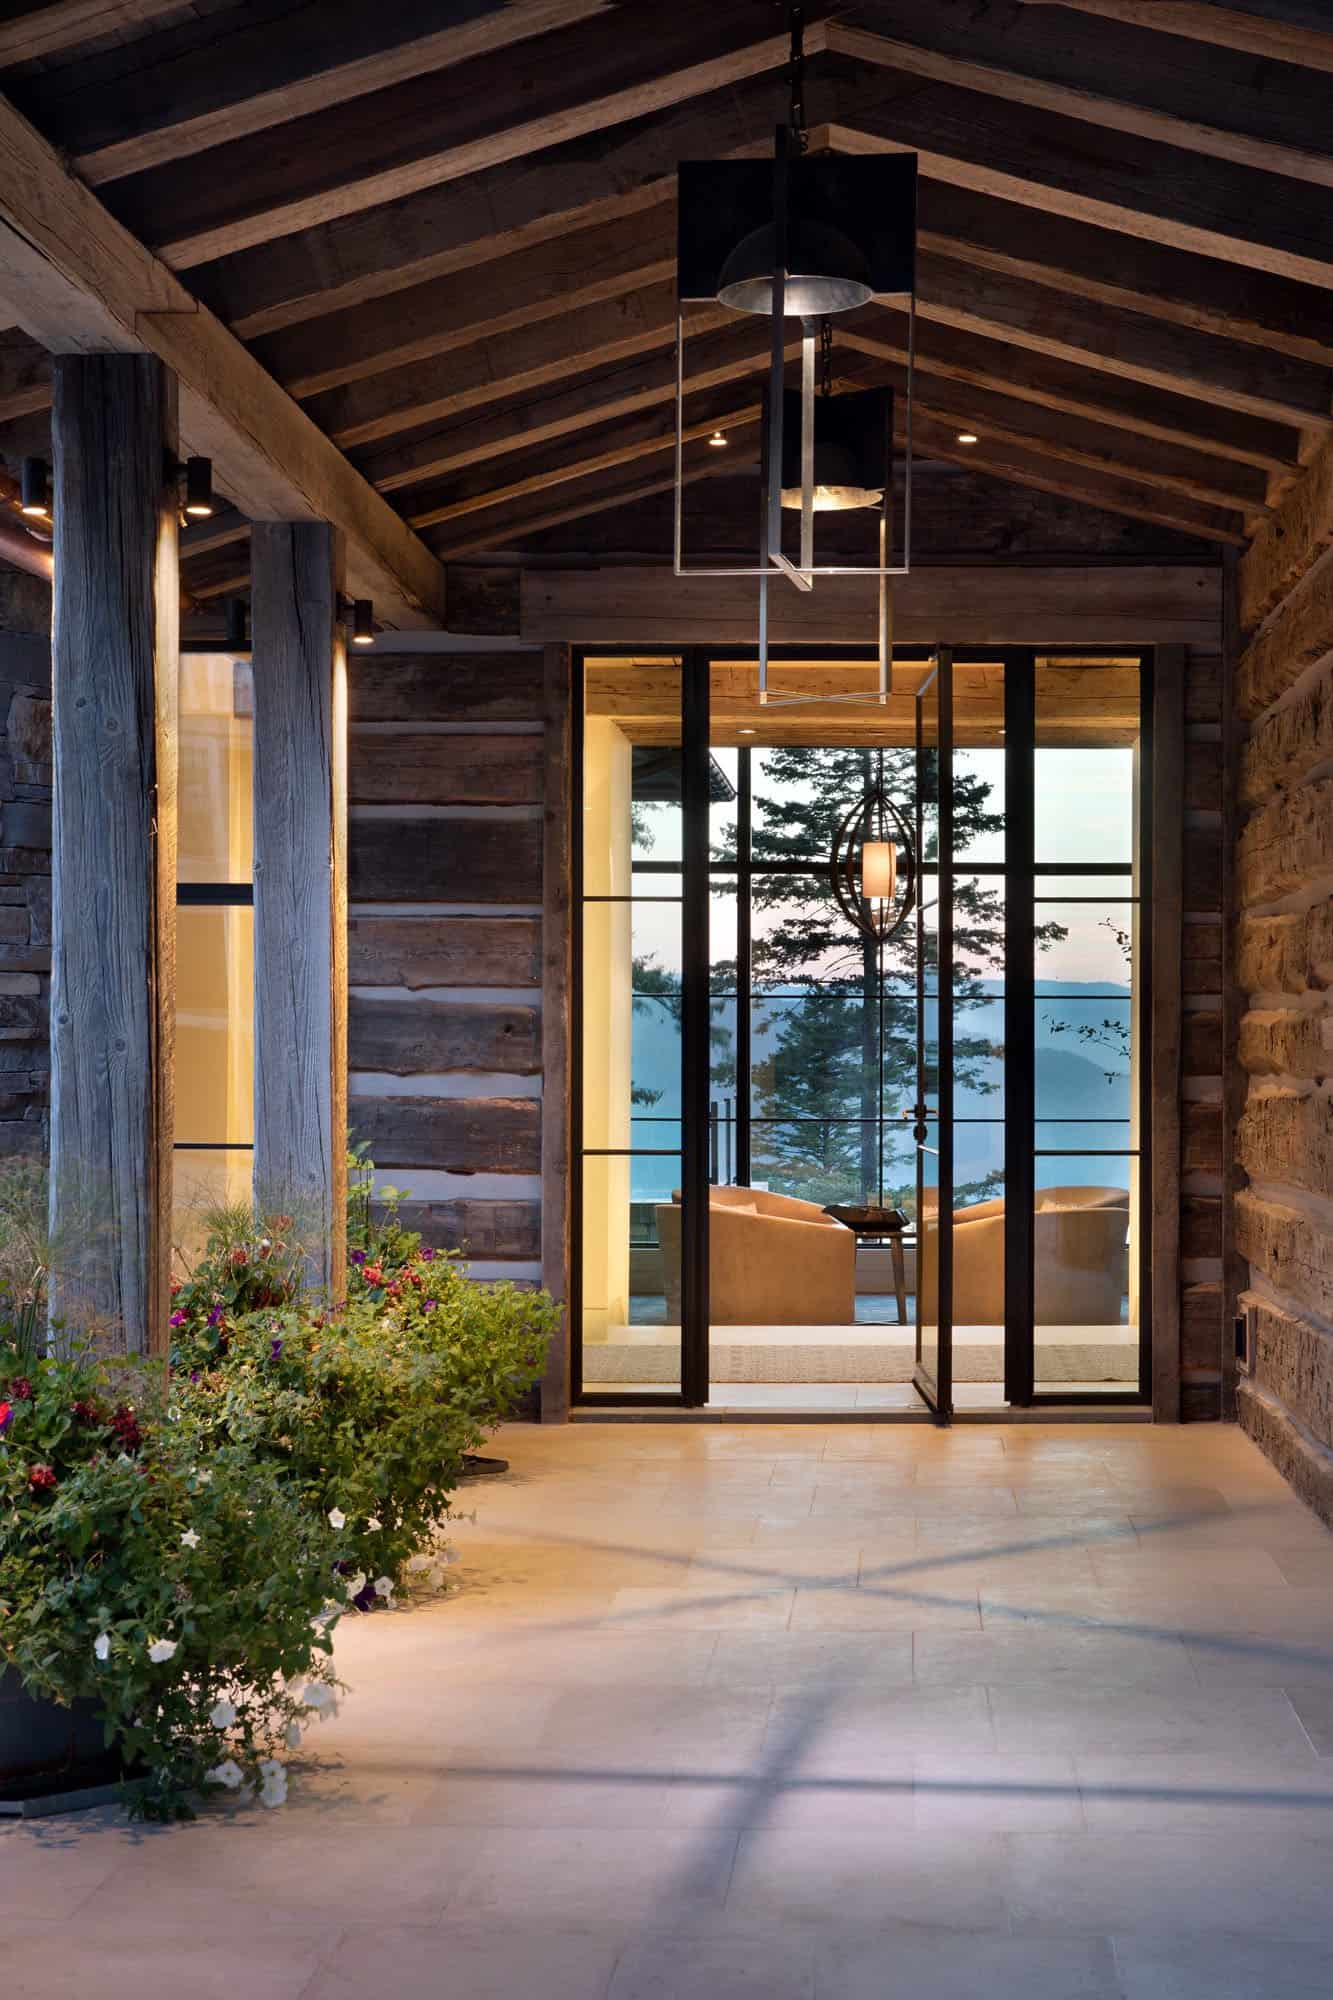 conidyllic-mountainside-home-entry